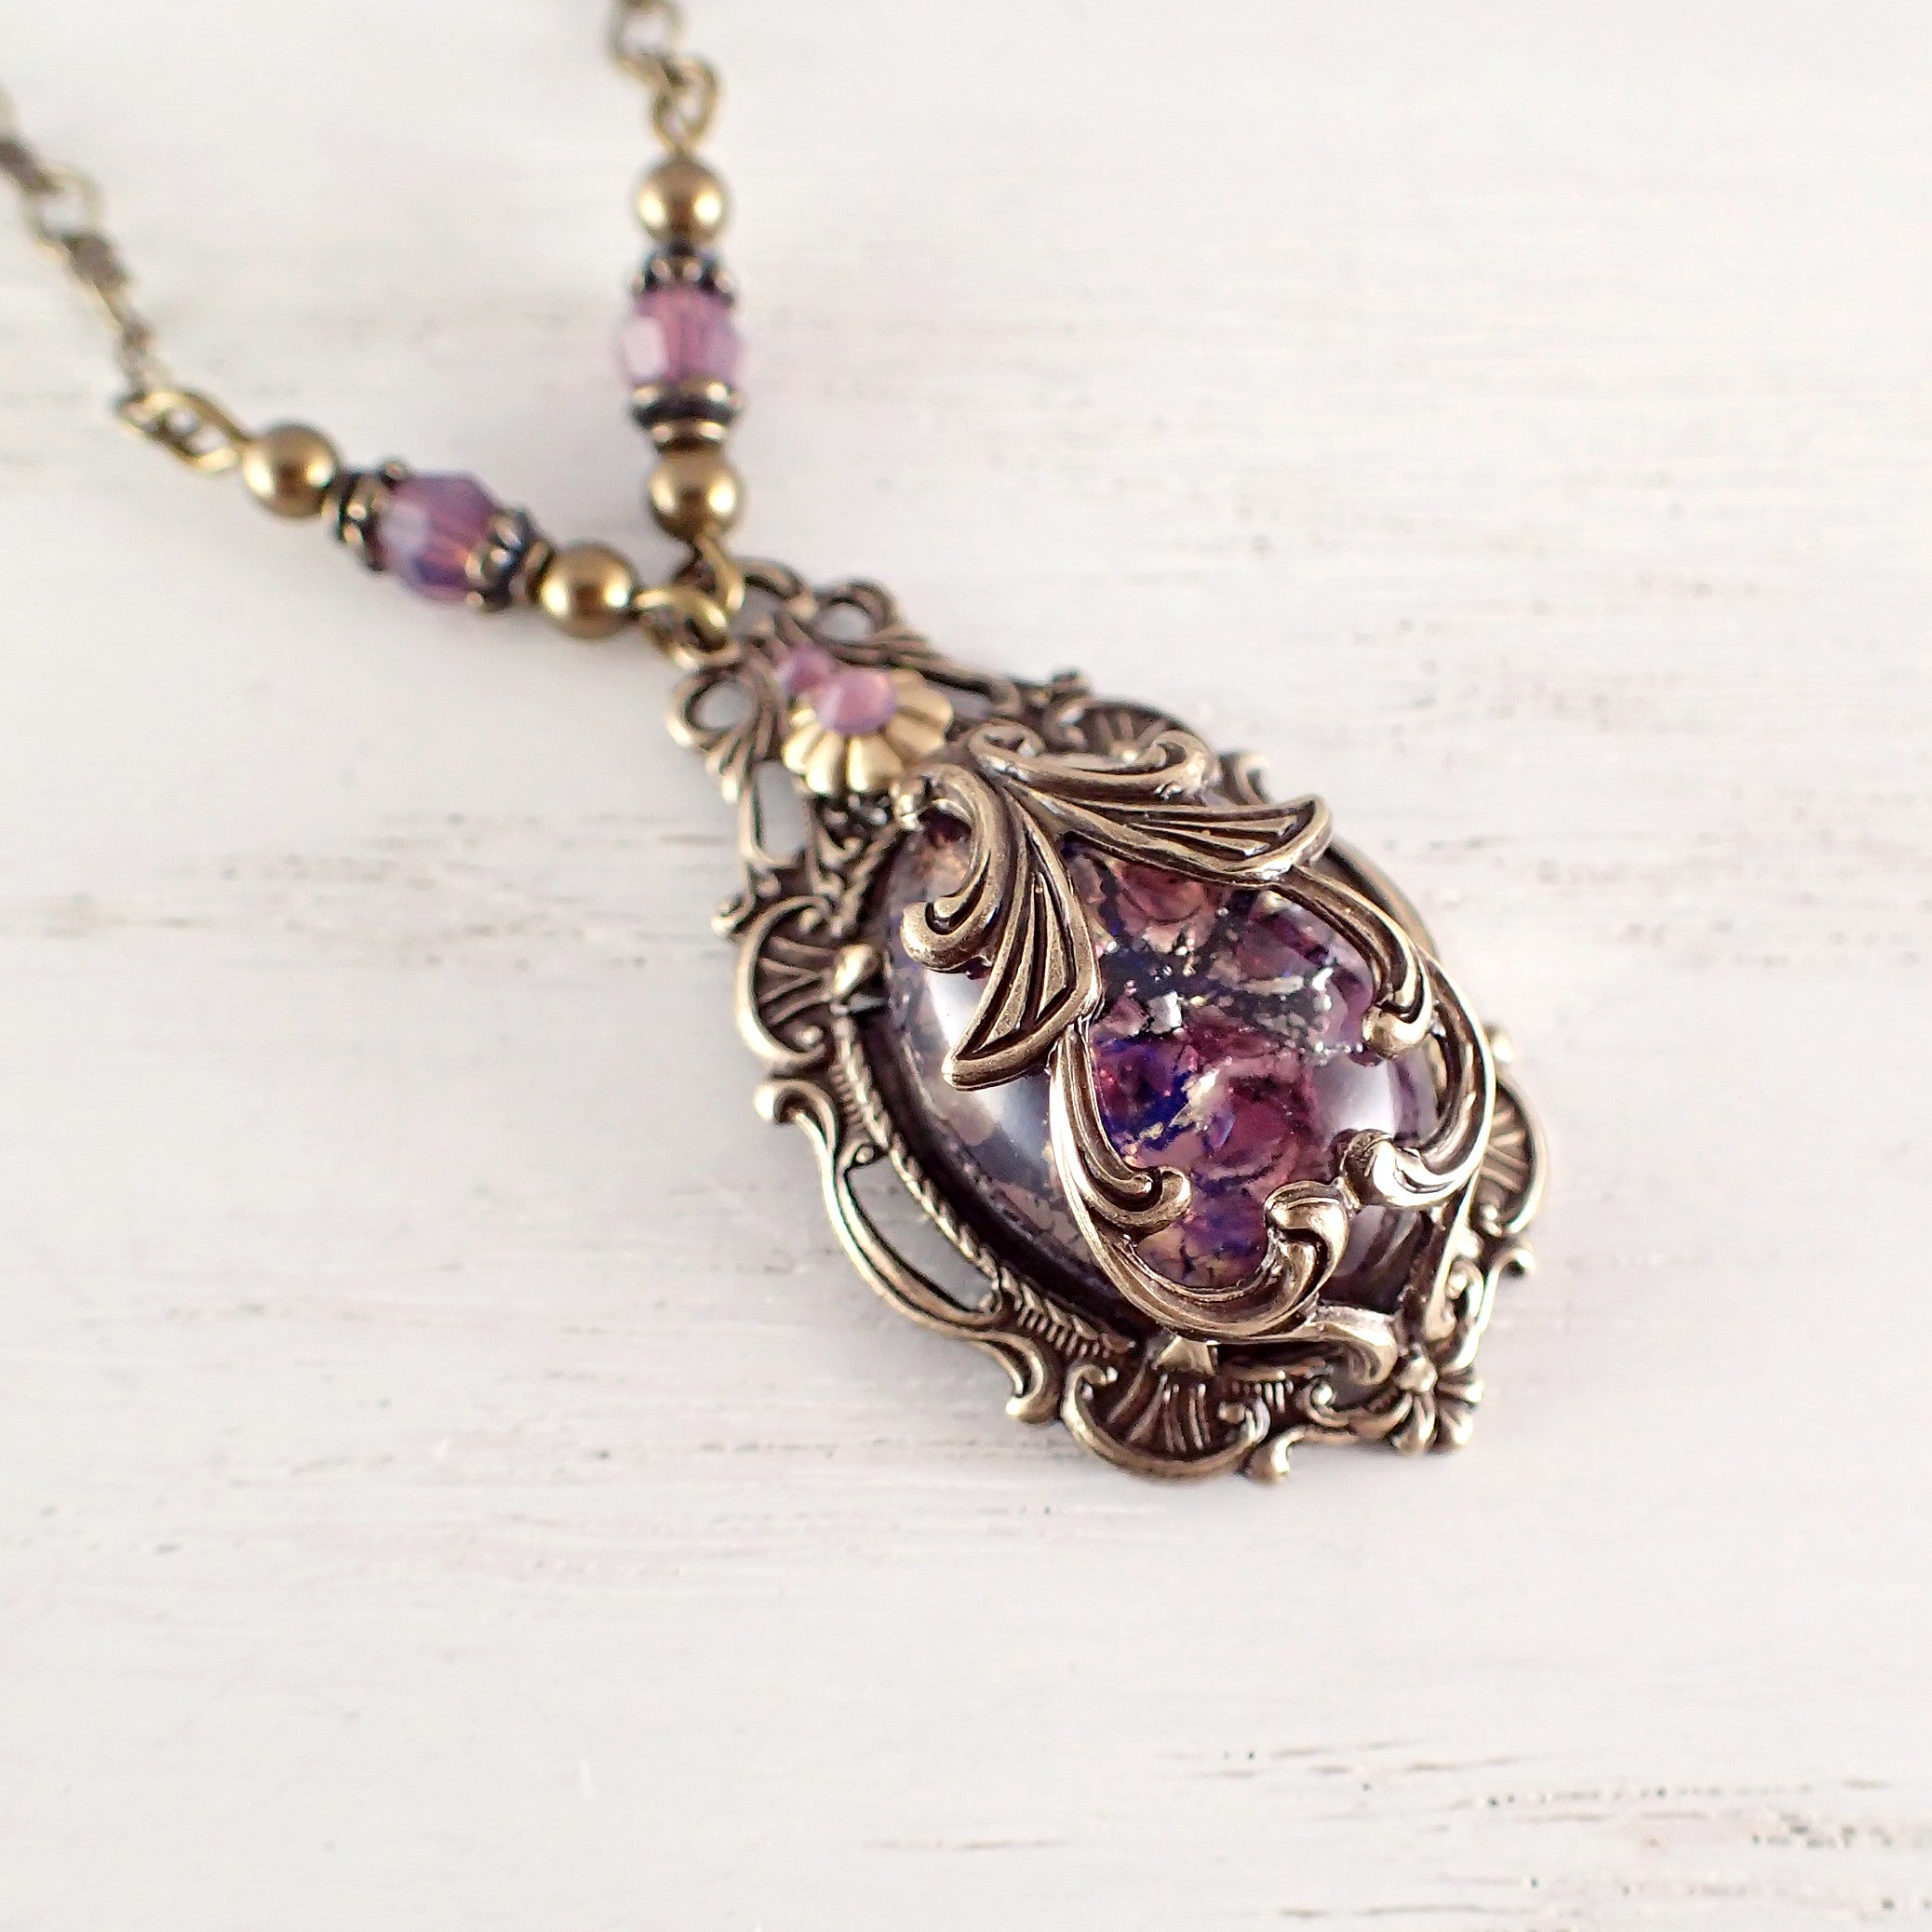 Victorian pendant necklace victorian necklace purple necklace bronze victorian pendant necklace victorian necklace purple necklace bronze jewelry purple pendant necklace purple necklace victorian jewelry aloadofball Image collections